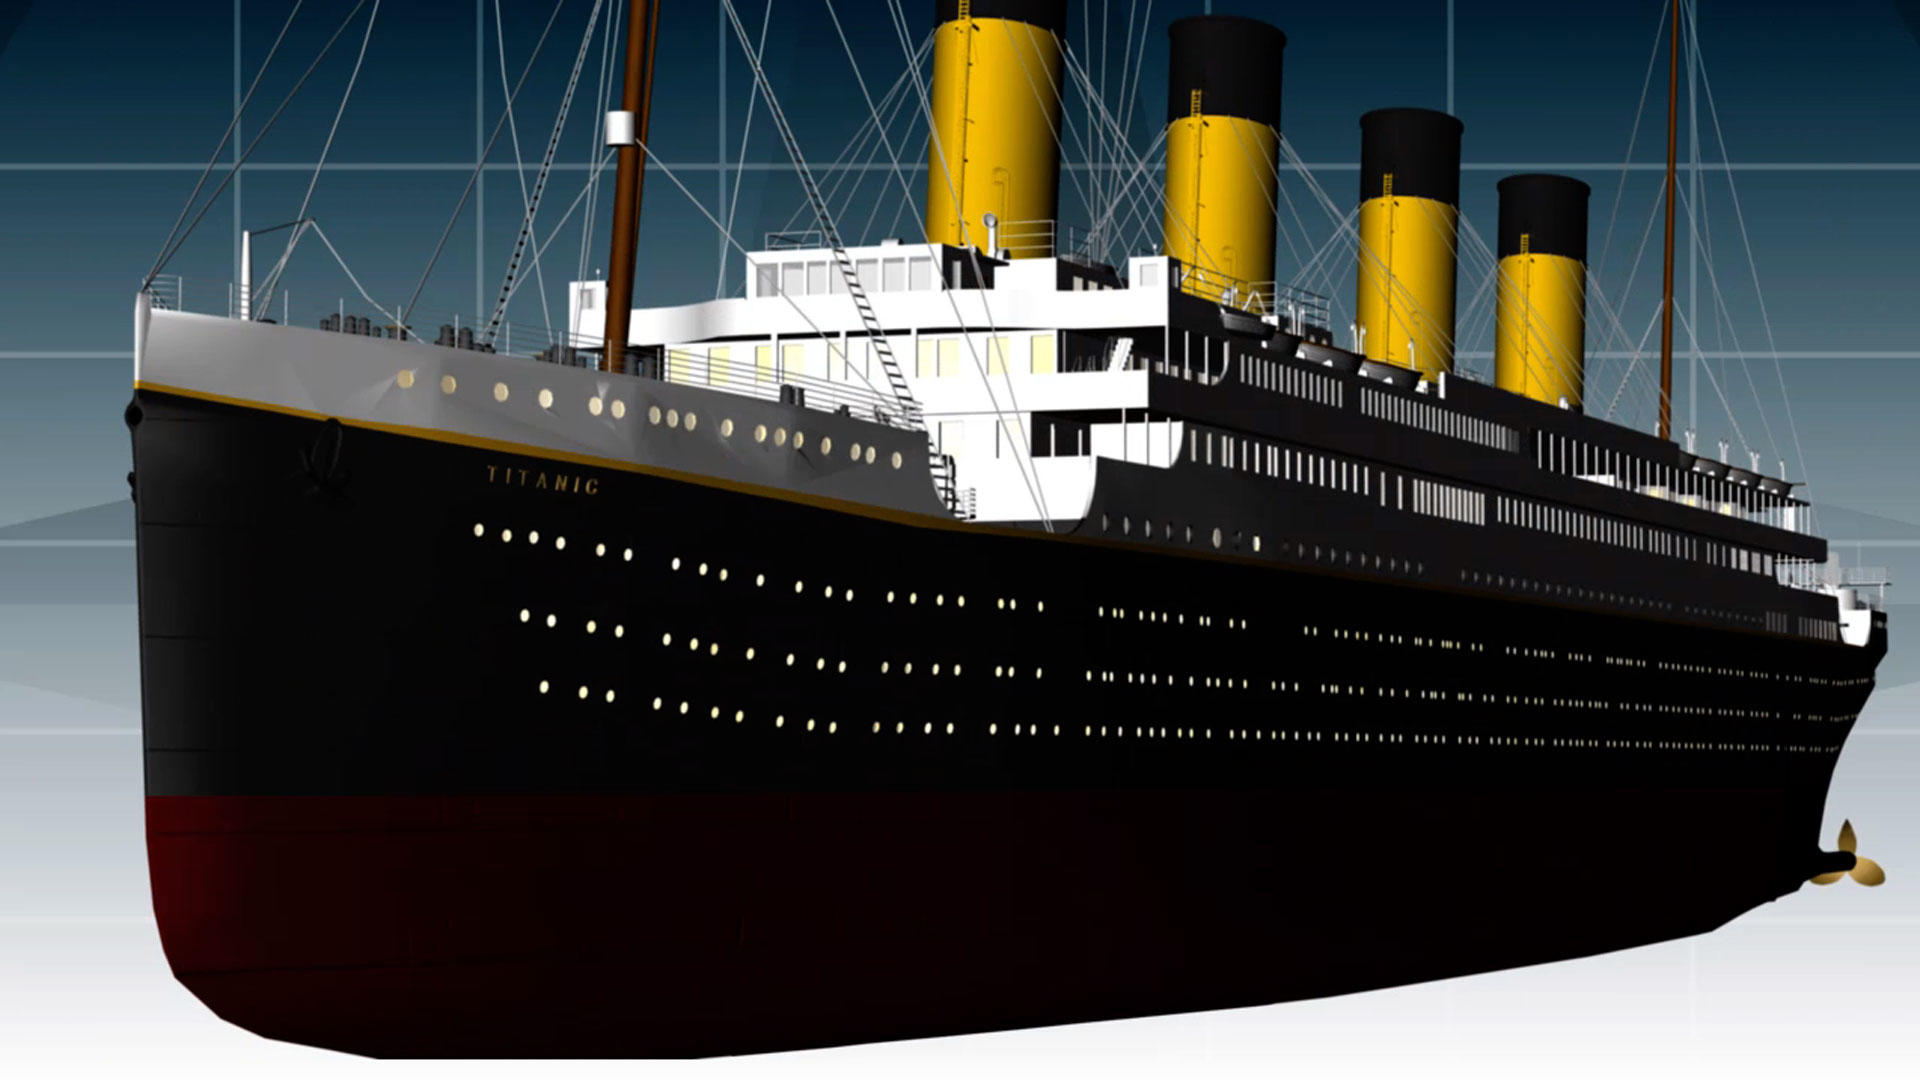 And the band played on titanic clipart Transparent pictures.